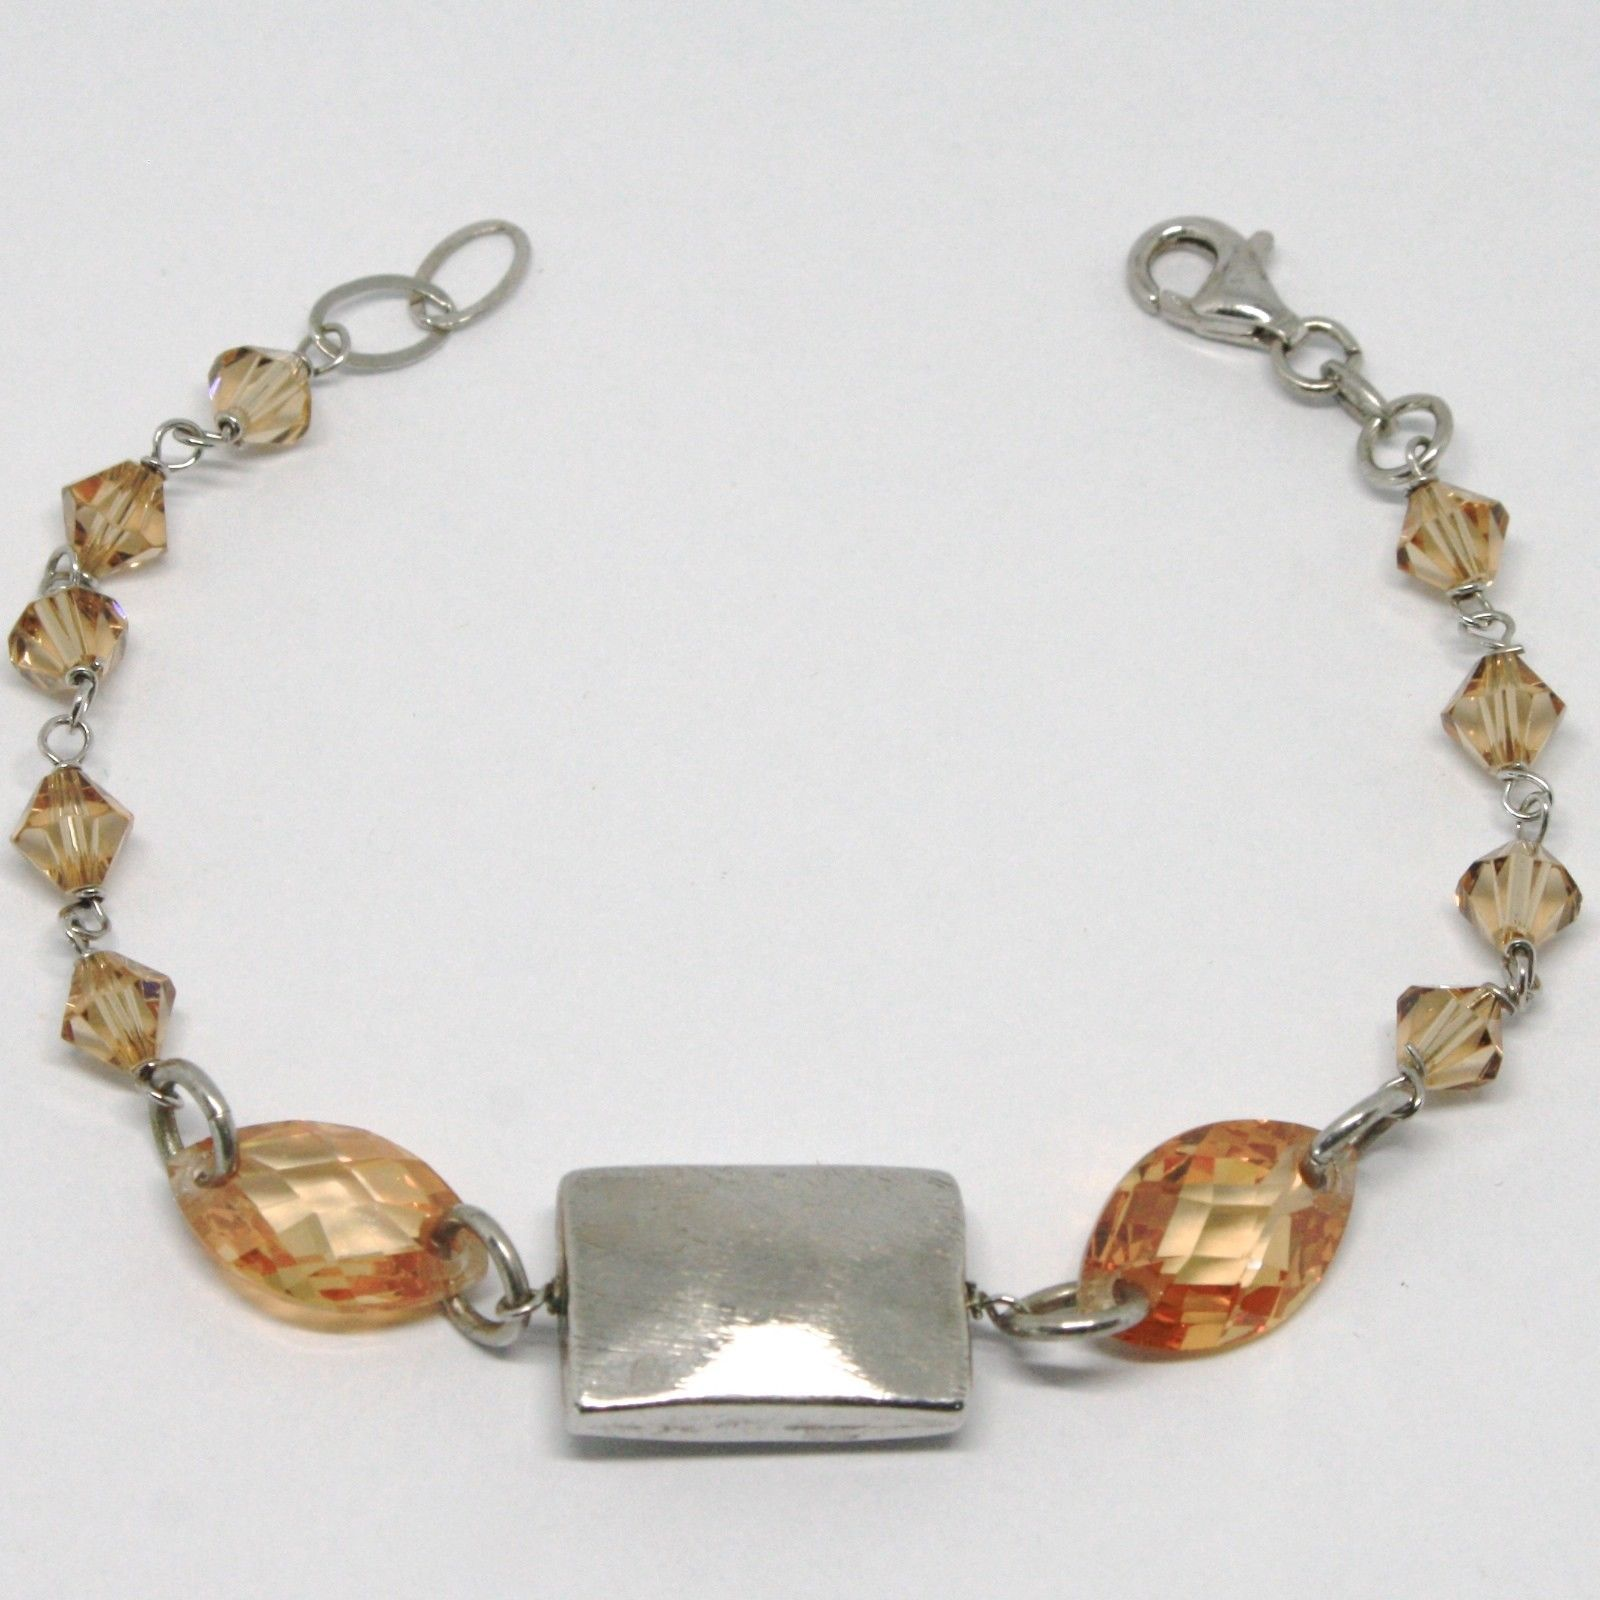 925 STERLING SILVER BRACELET ORANGE FACETED OVAL, WORKED CENTRAL PLATE RECTANGLE